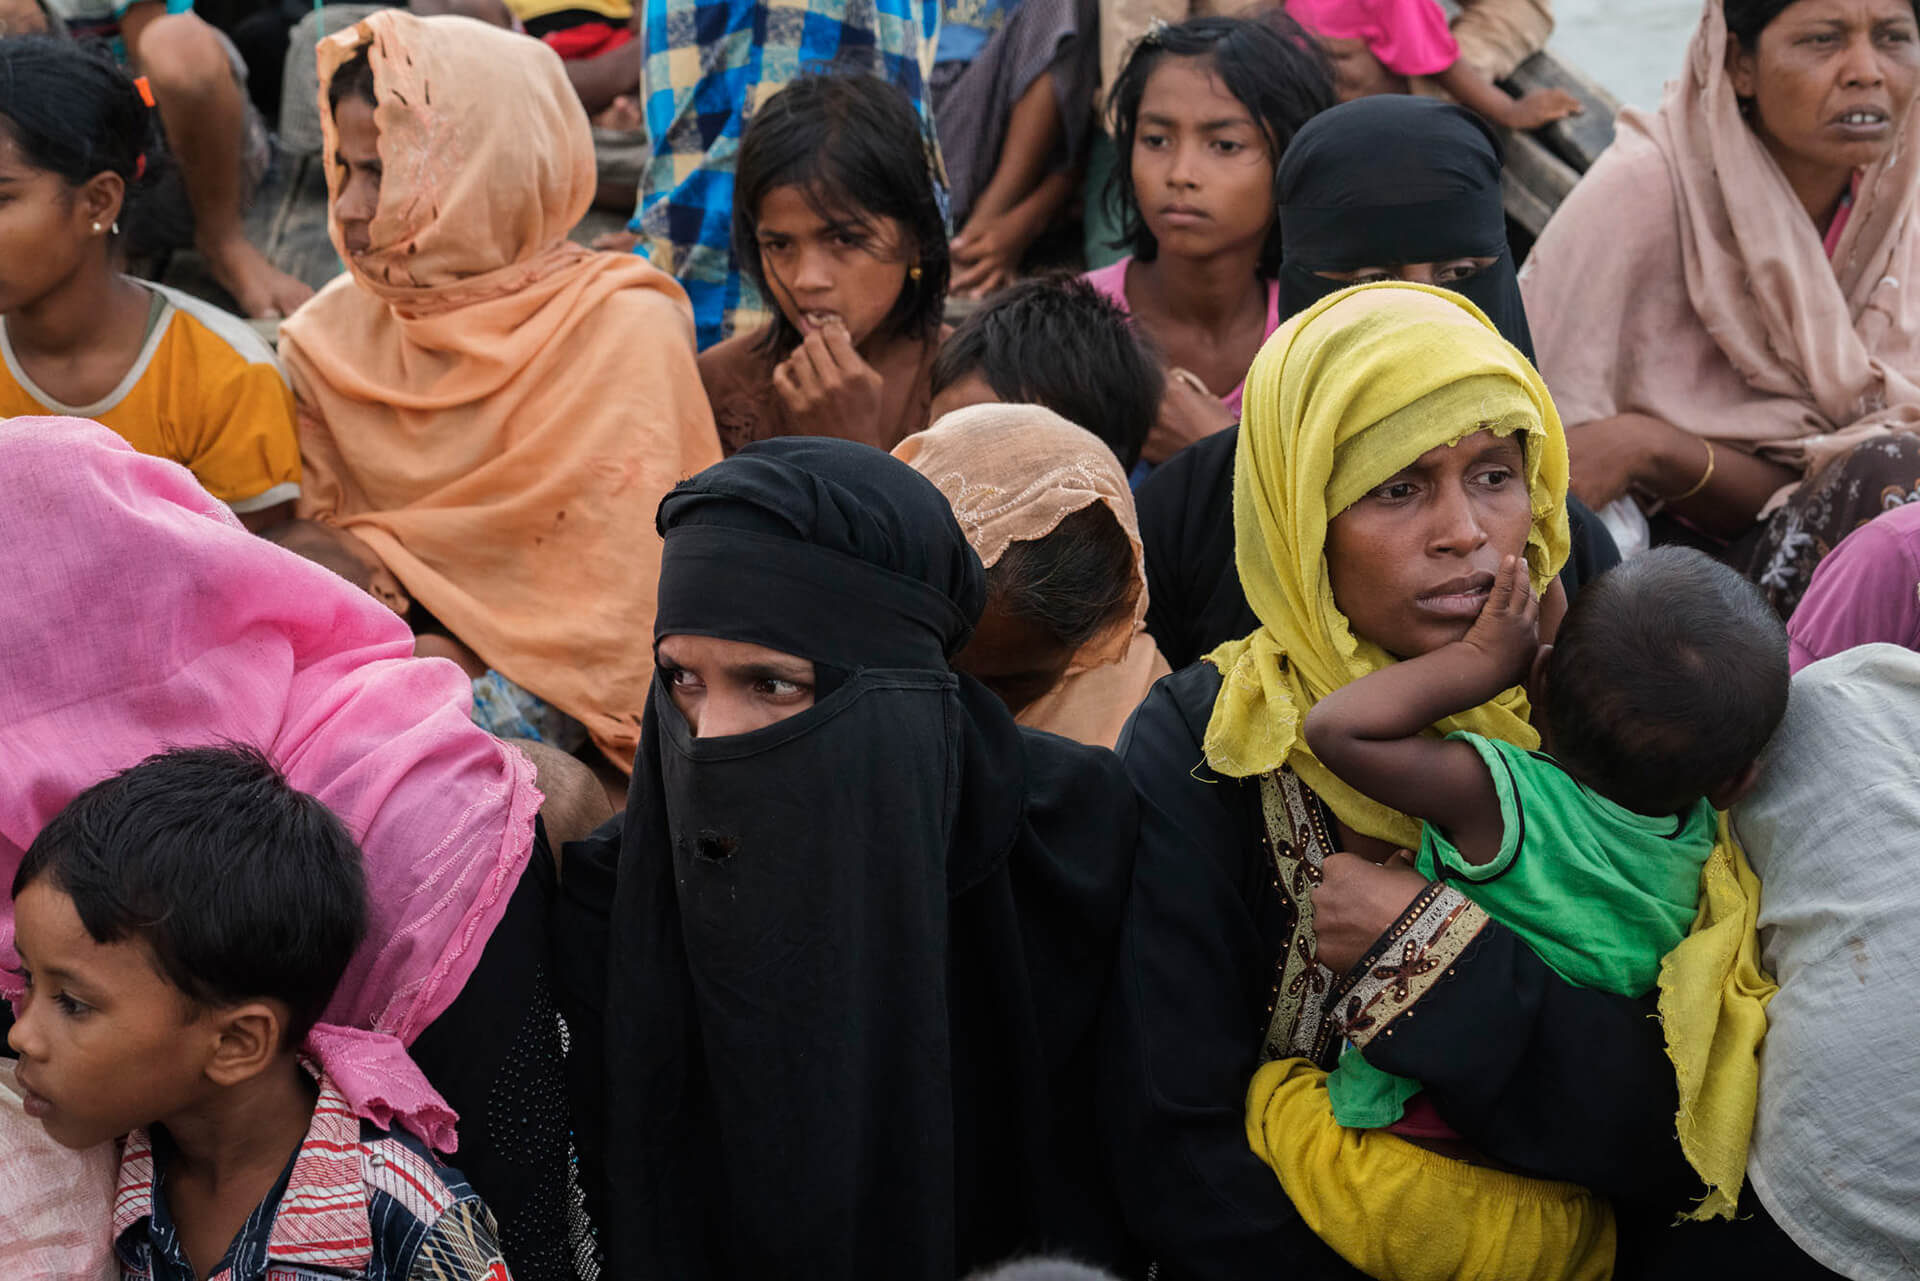 Rohingya refugees from Myanmar who arrived in Bangladesh the previous night, crossing over by boat to Teknaf | Shahidul Alam | World Photography Day | STIRworld